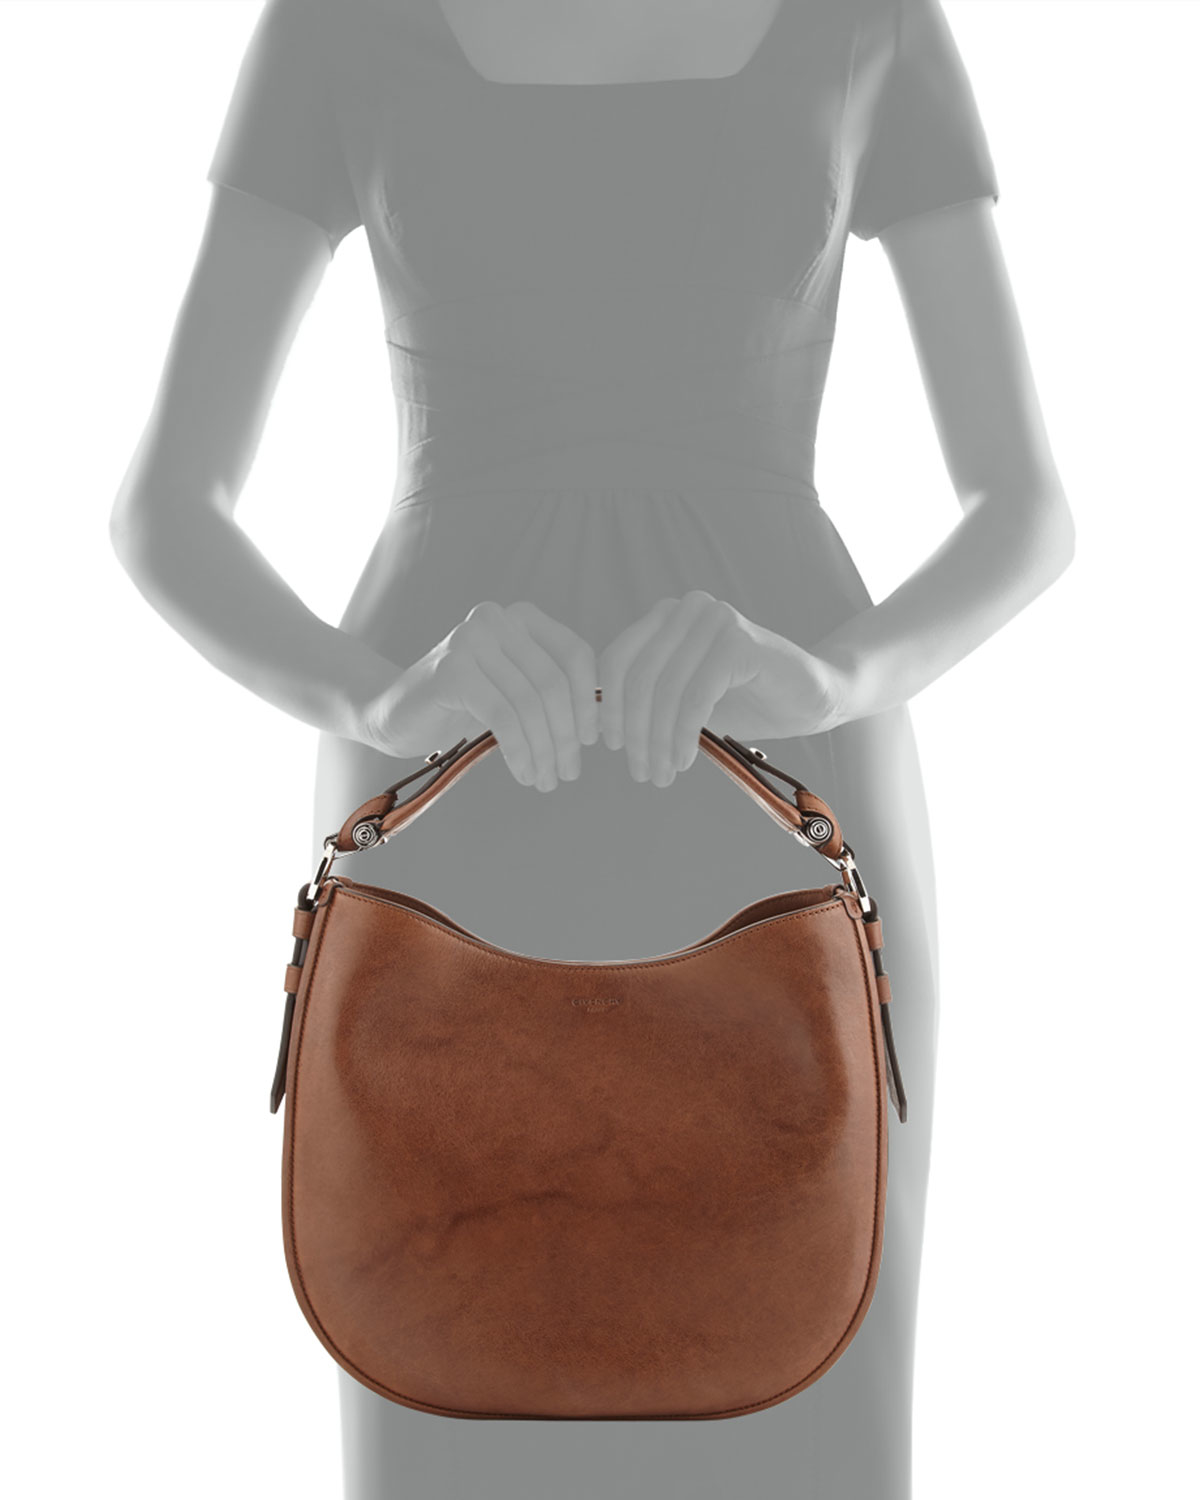 1ceb34db70e Lyst - Givenchy Obsedia Small Leather Hobo Bag in Brown